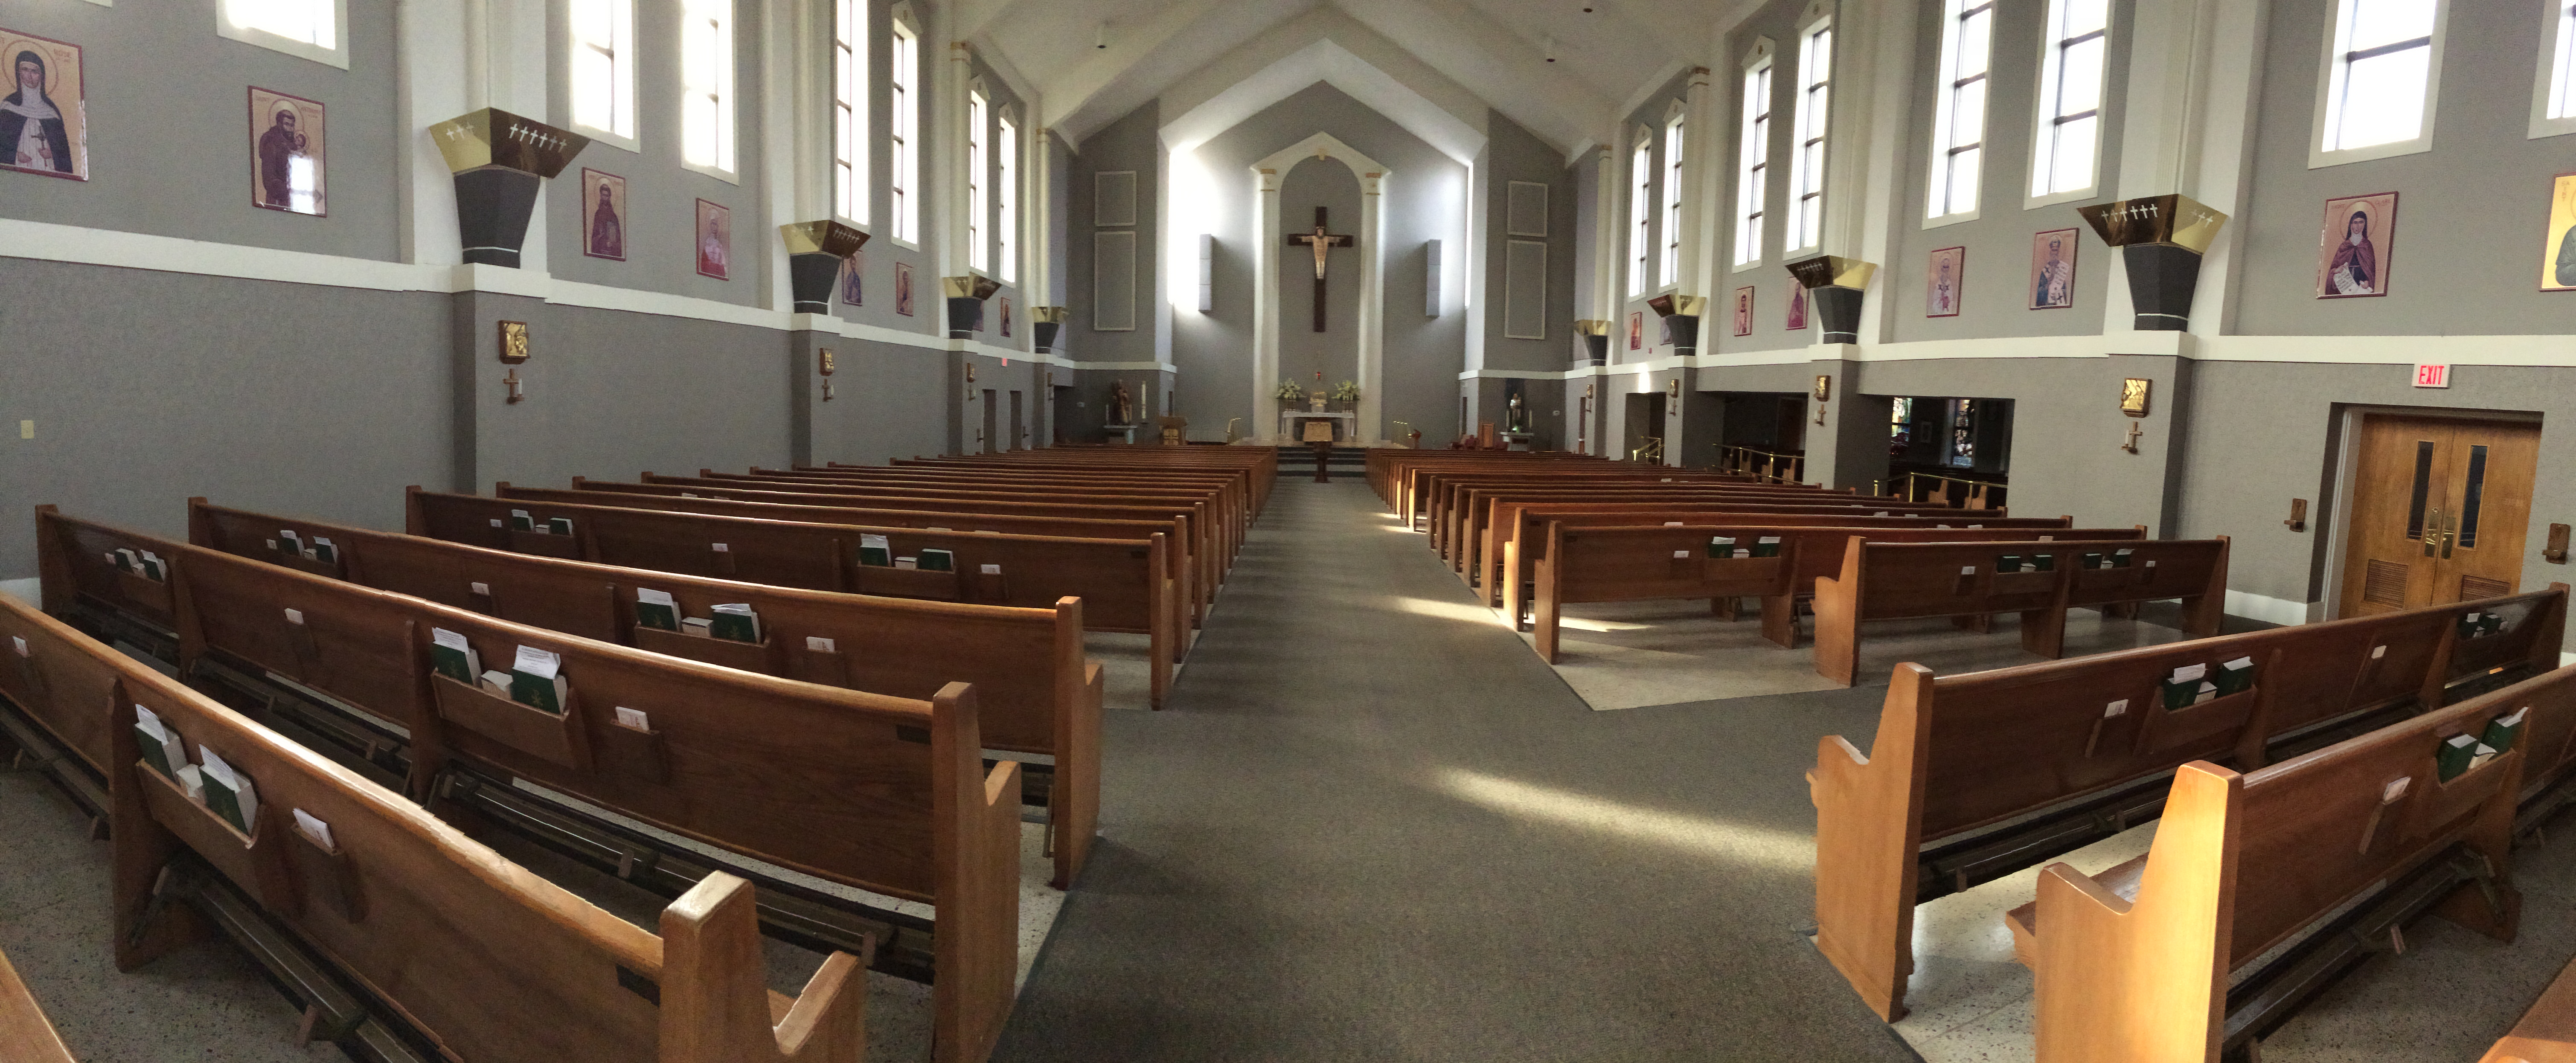 Here is a look at the inside of St. Andrew Catholic Church in Myrtle Beach. I took this photo last night before our meeting with the music director.